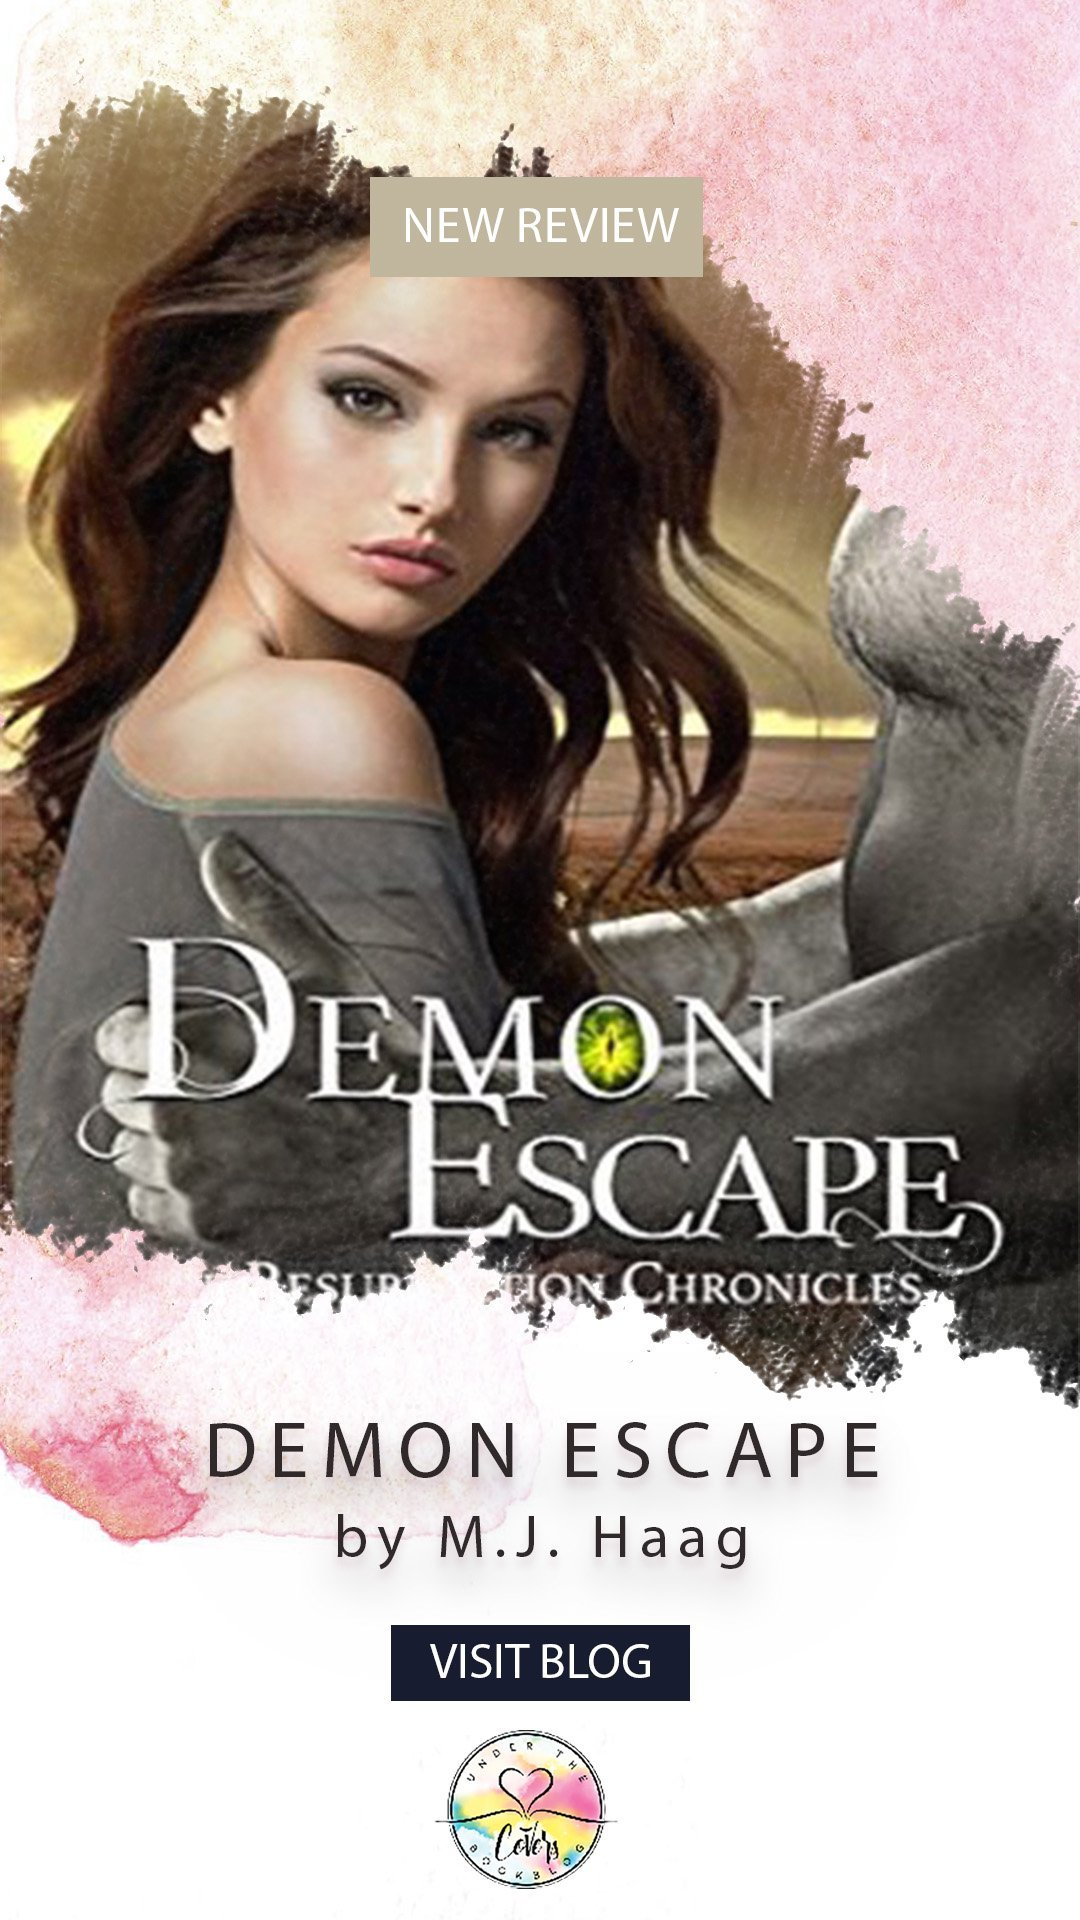 Review: Demon Escape by M.J. Haag